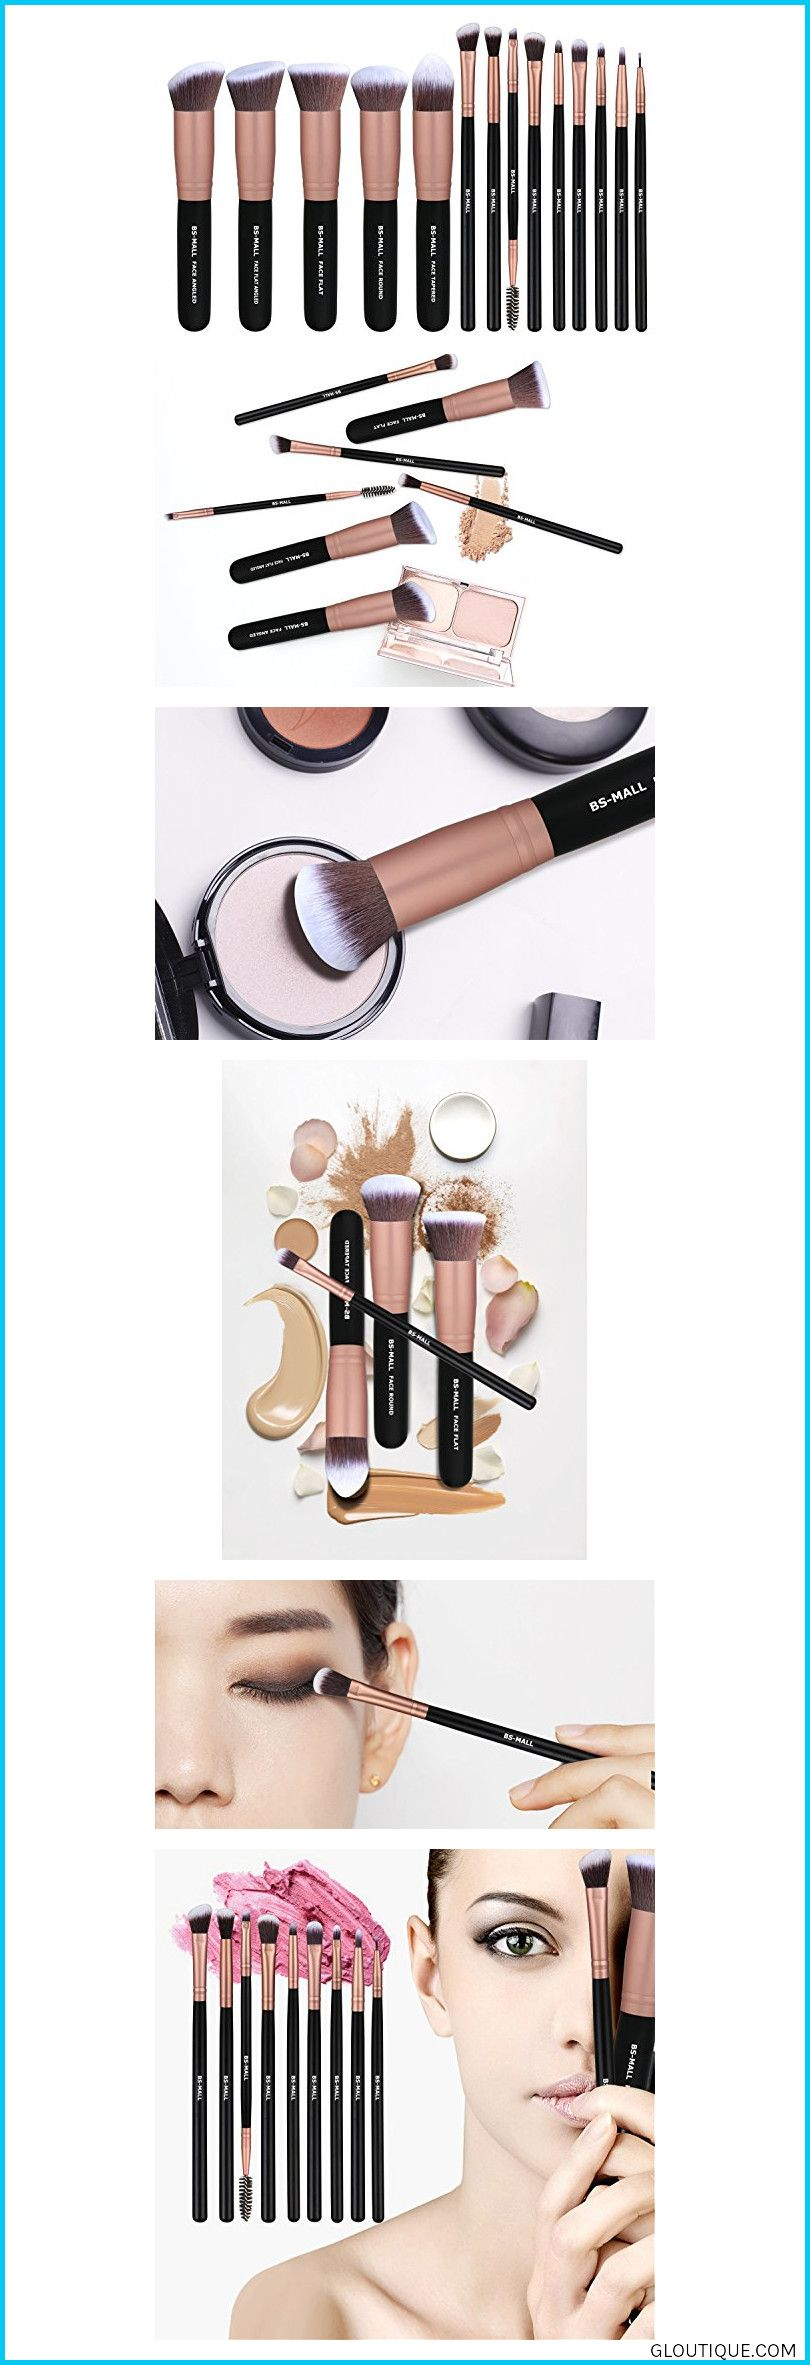 BSMALL Makeup Brushes Premium Synthetic Foundation Powder